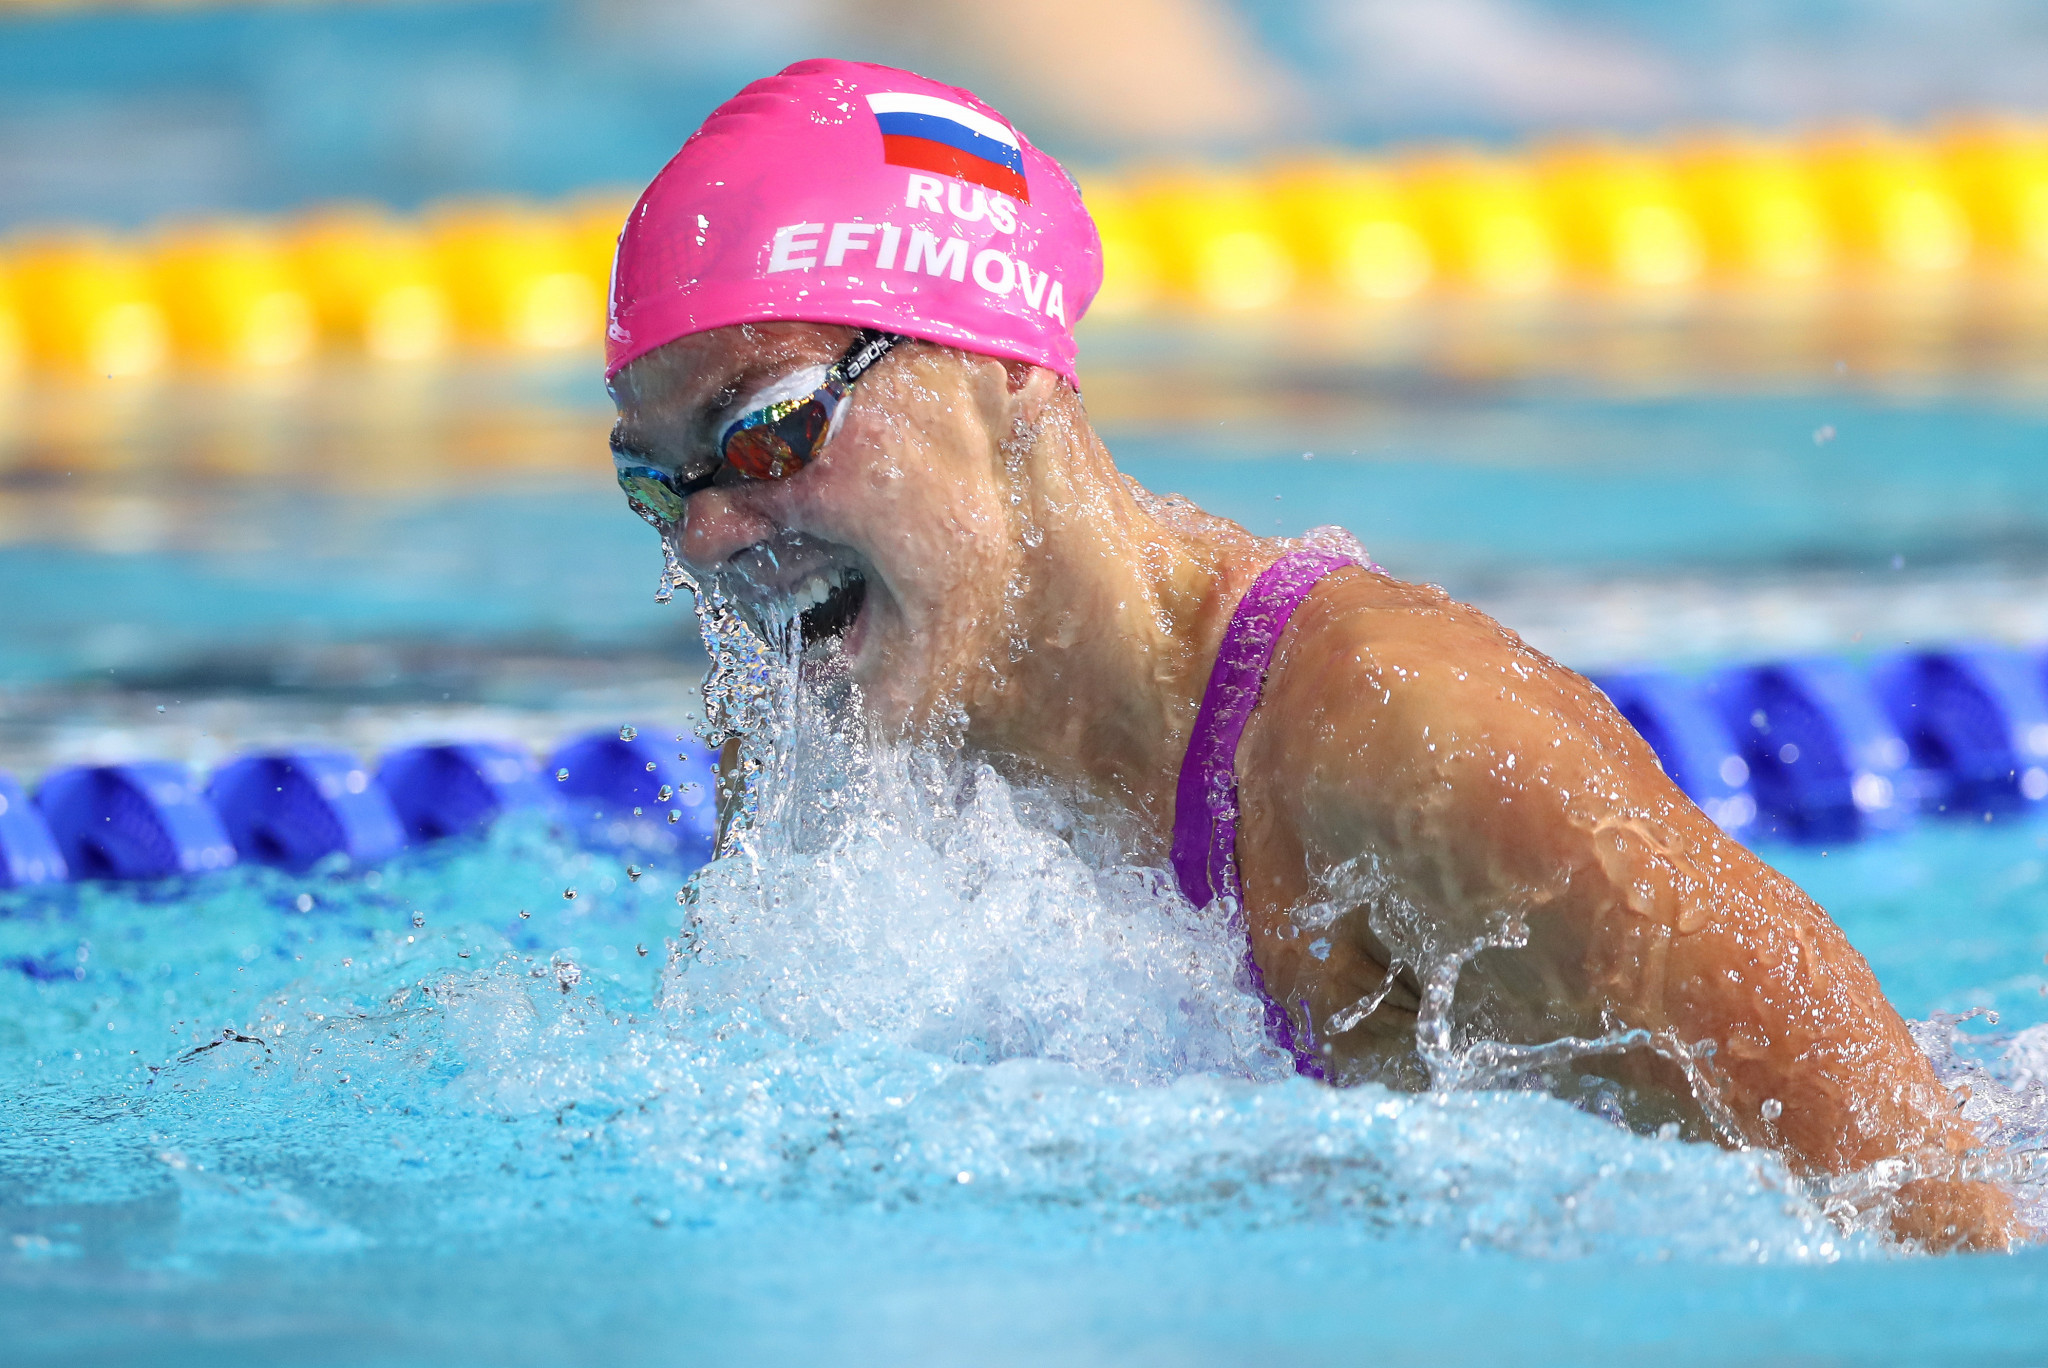 Home swimmers Prigoda, Morozov and Efimova to feature at FINA World Cup opener in Kazan